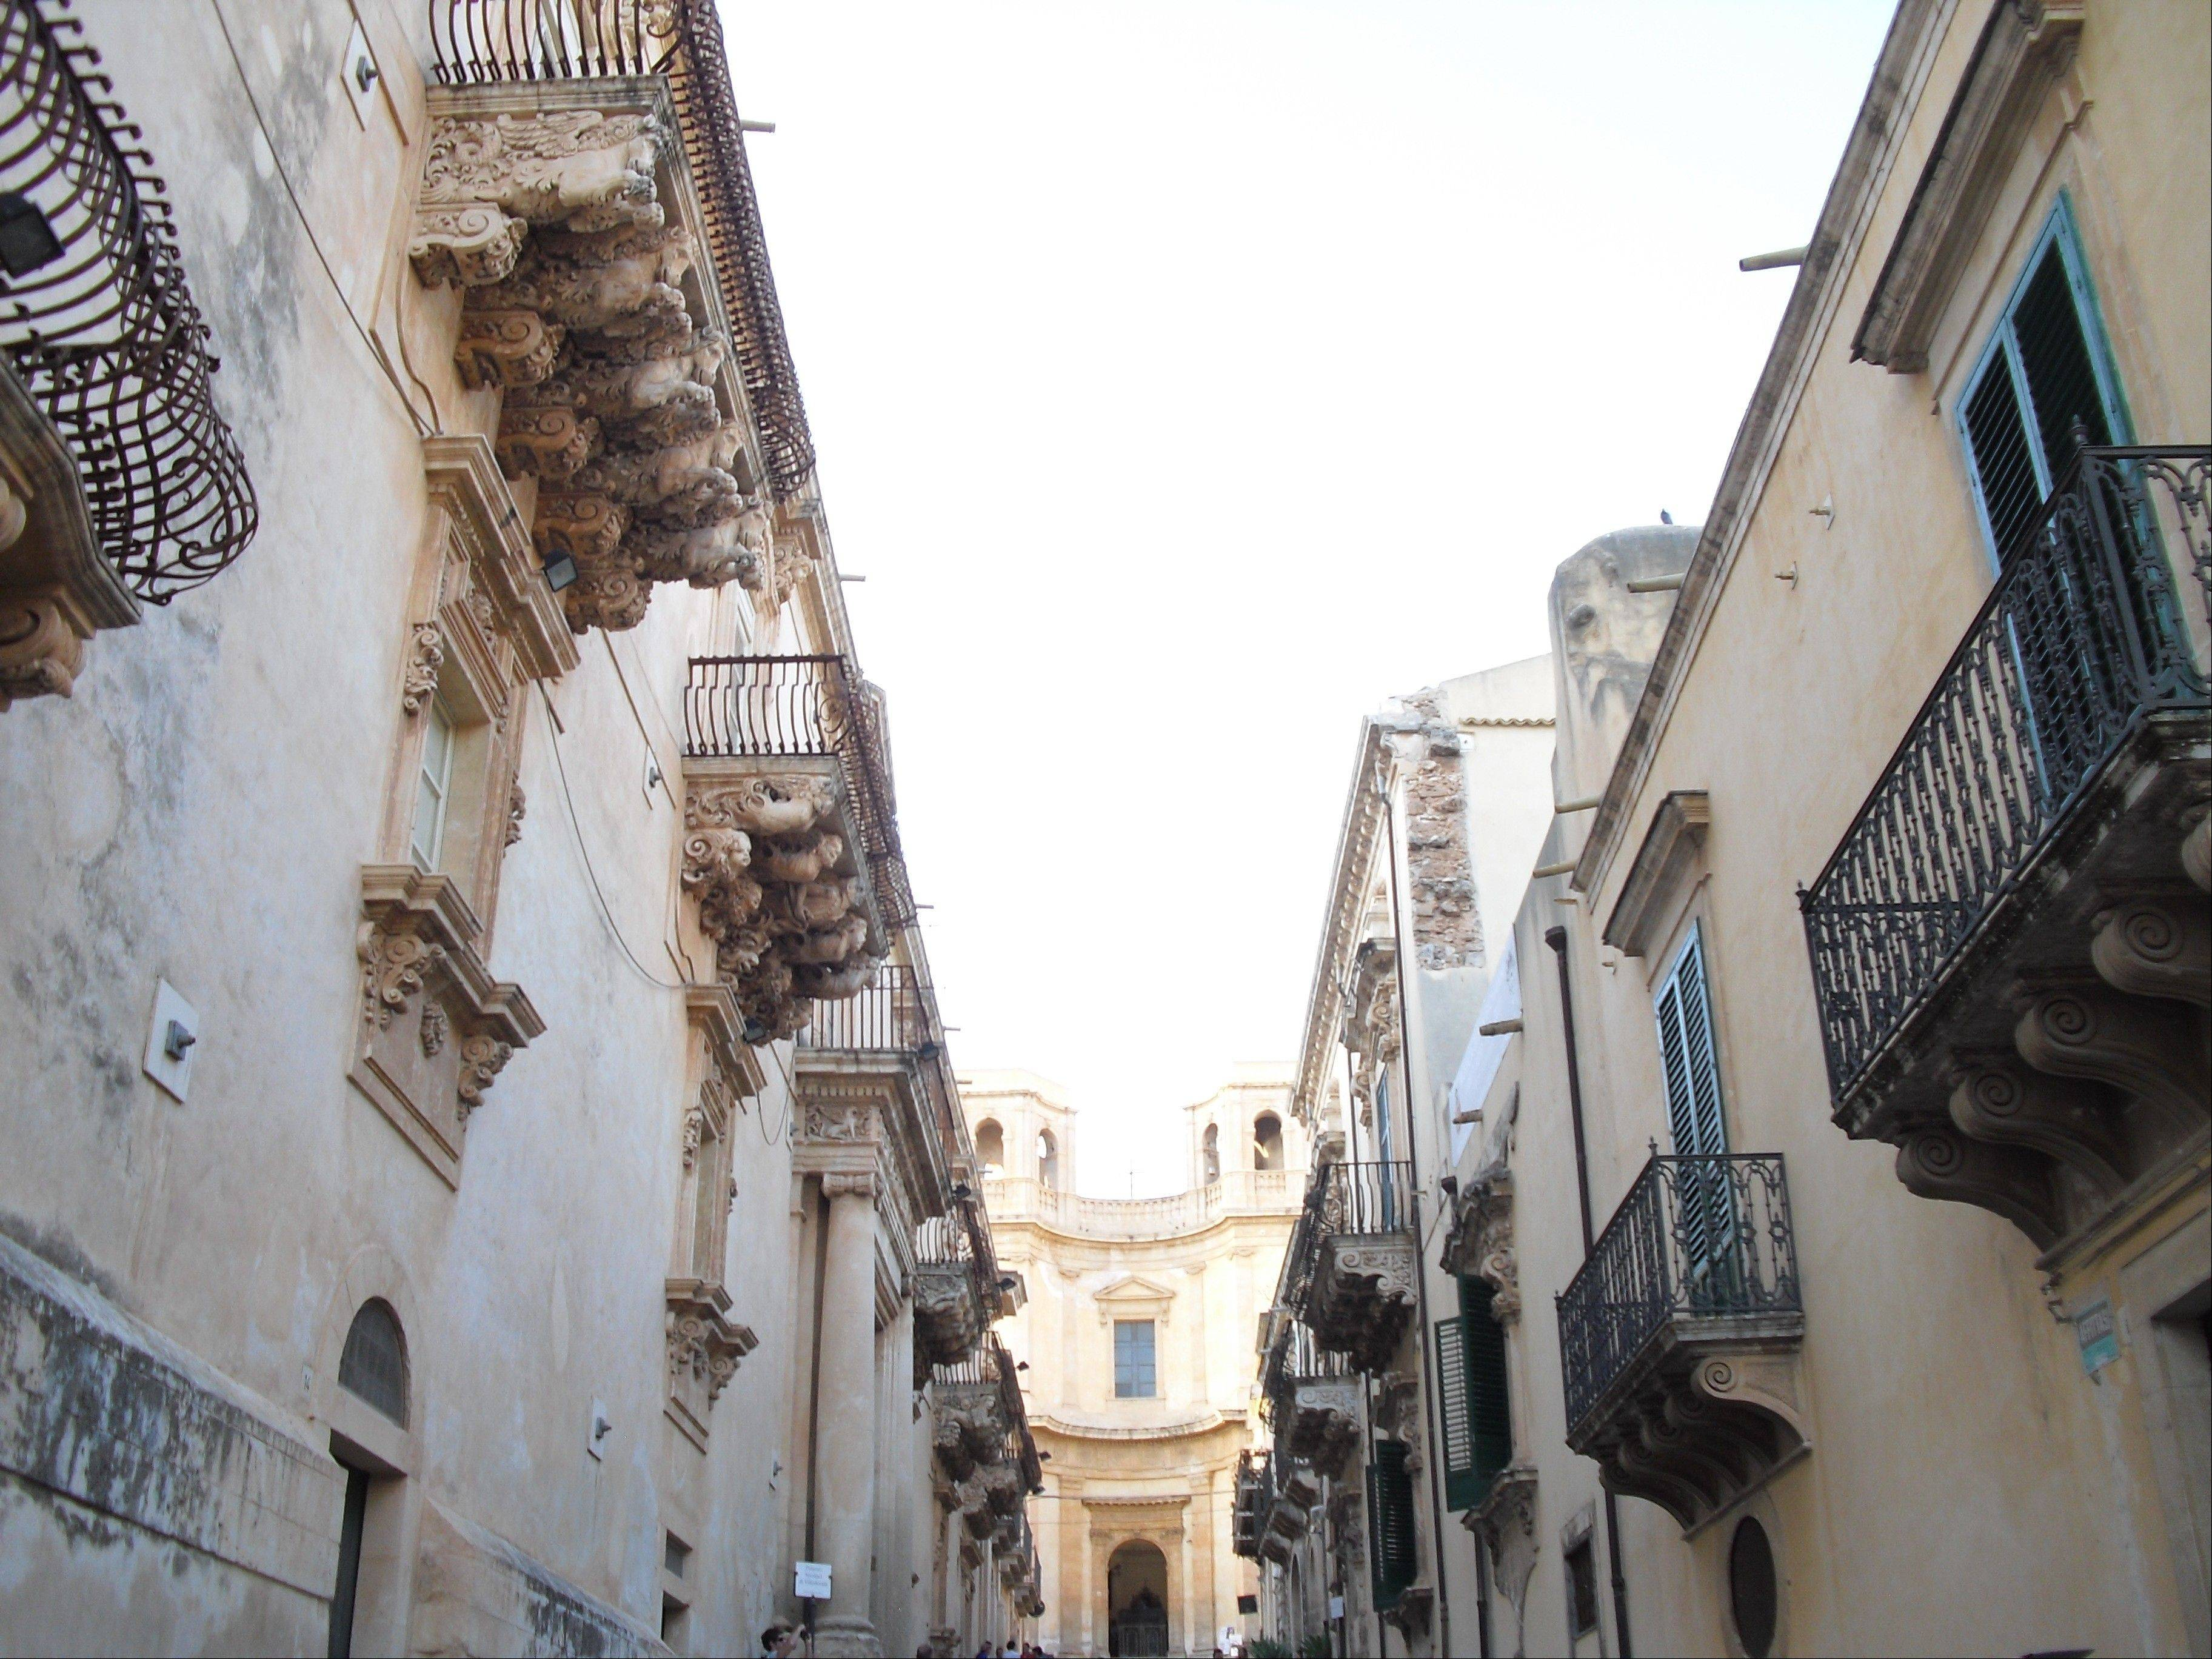 The Palazzo Villadorata, left, and the Palazzo Sant' Alfano frame the Chiesa di Montevergine in the Sicilian city of Noto.